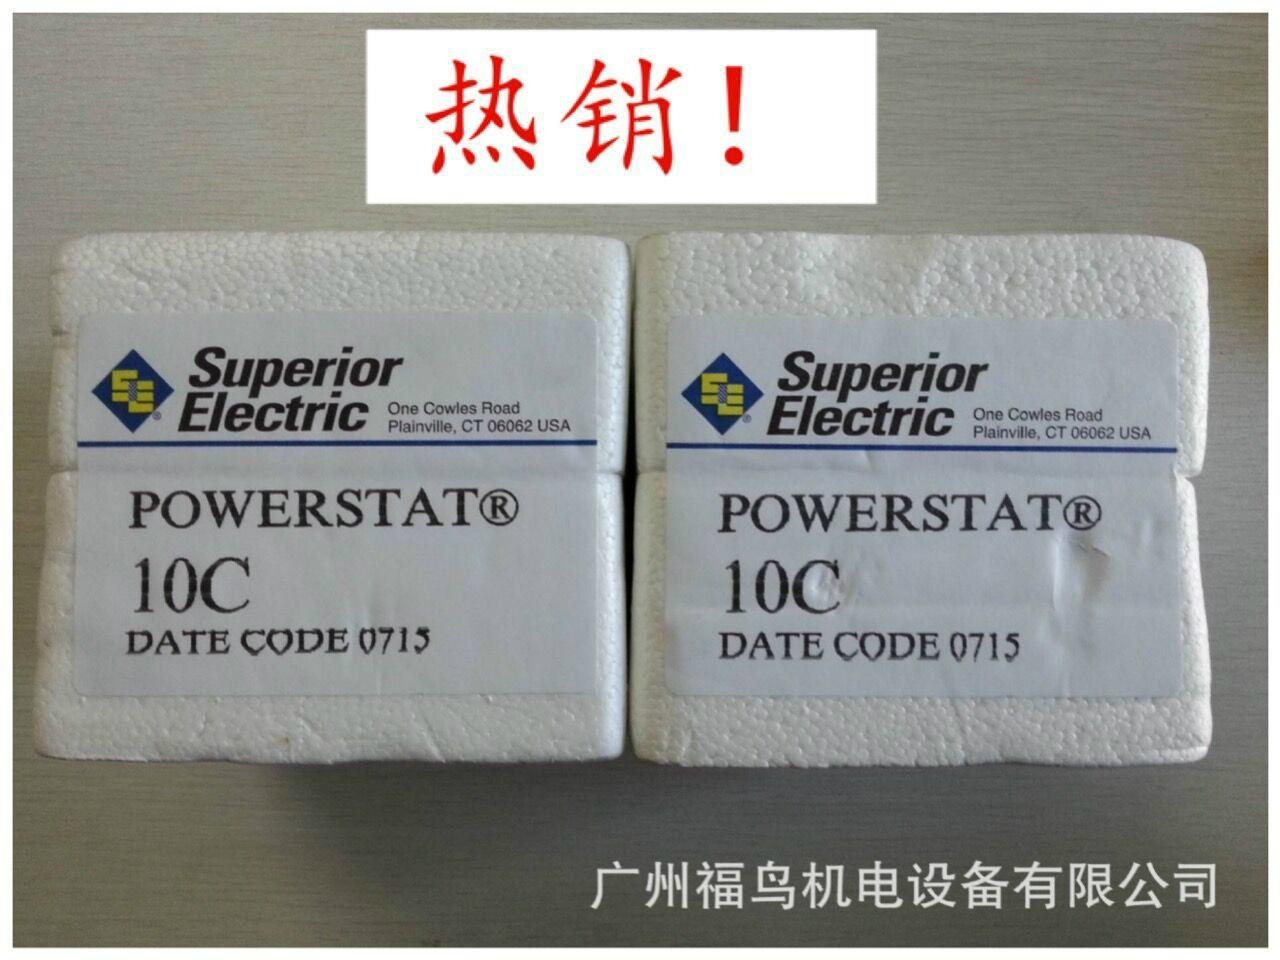 SUPERIOR ELECTRIC調壓器, 型號: 10C